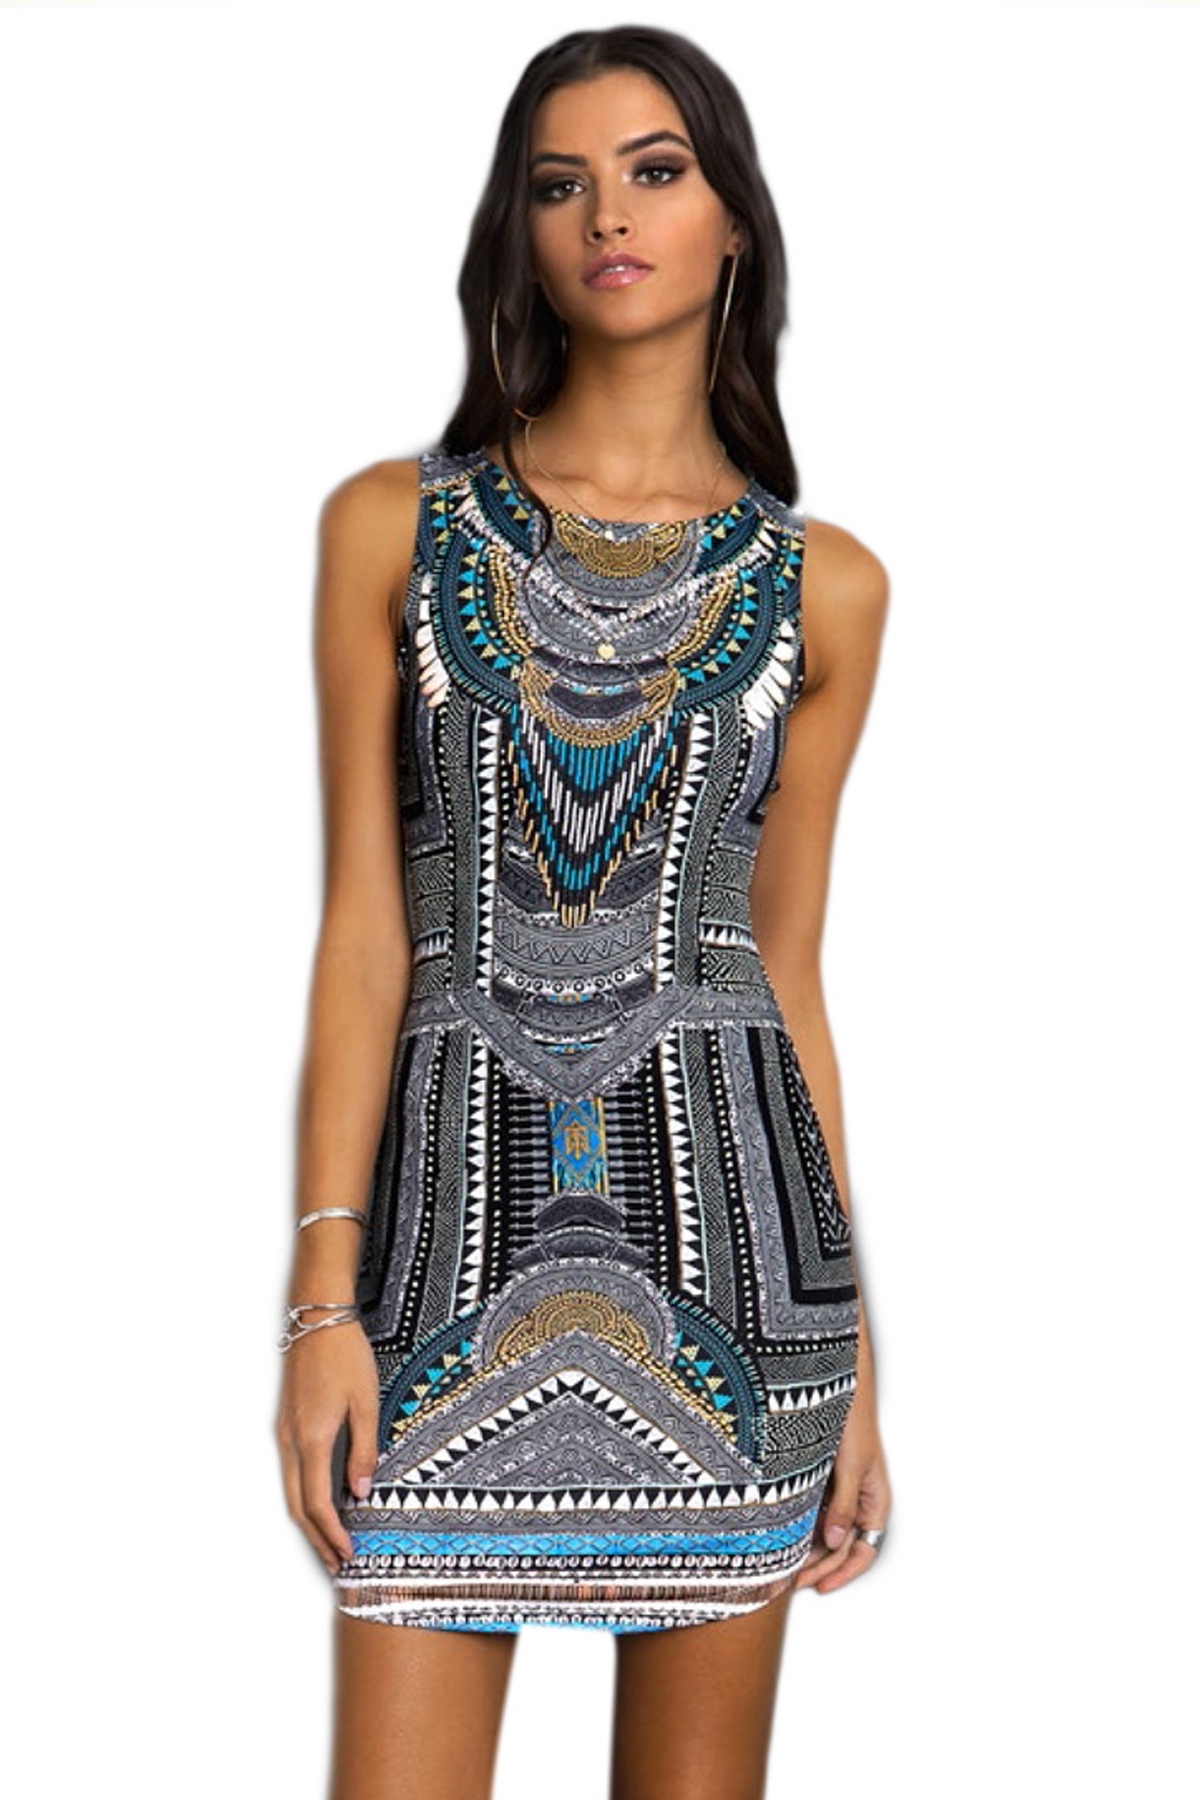 PEACE AND CHAOS TRIBAL BODYCON - Abebablom Store 6947272243d